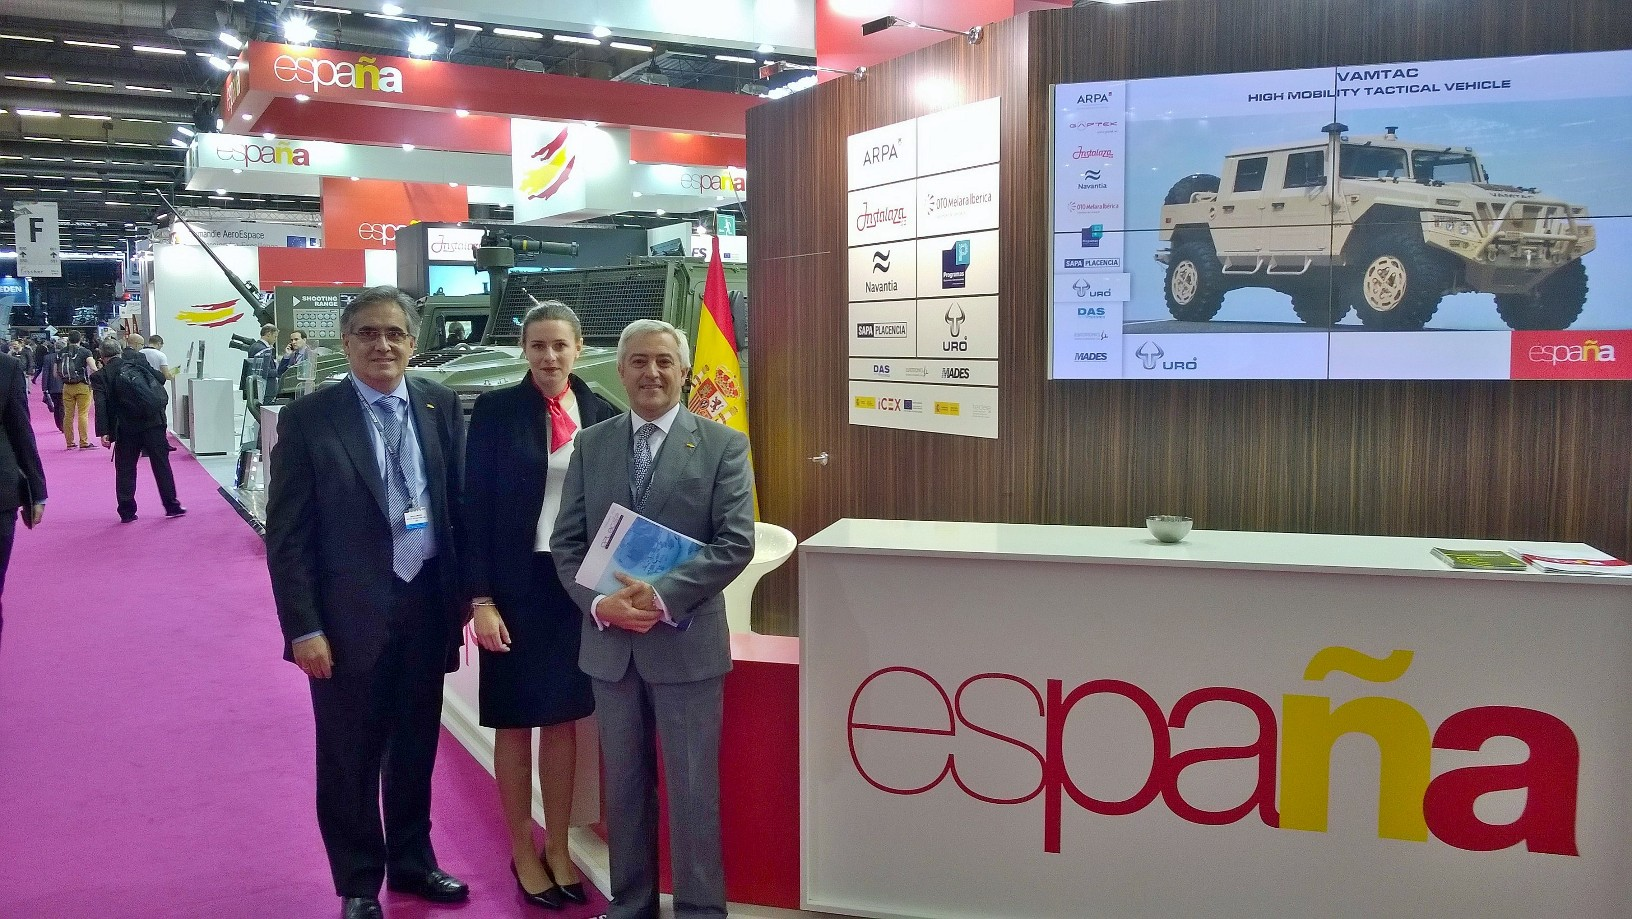 EUROSATORY: the most important event in the Defense sector